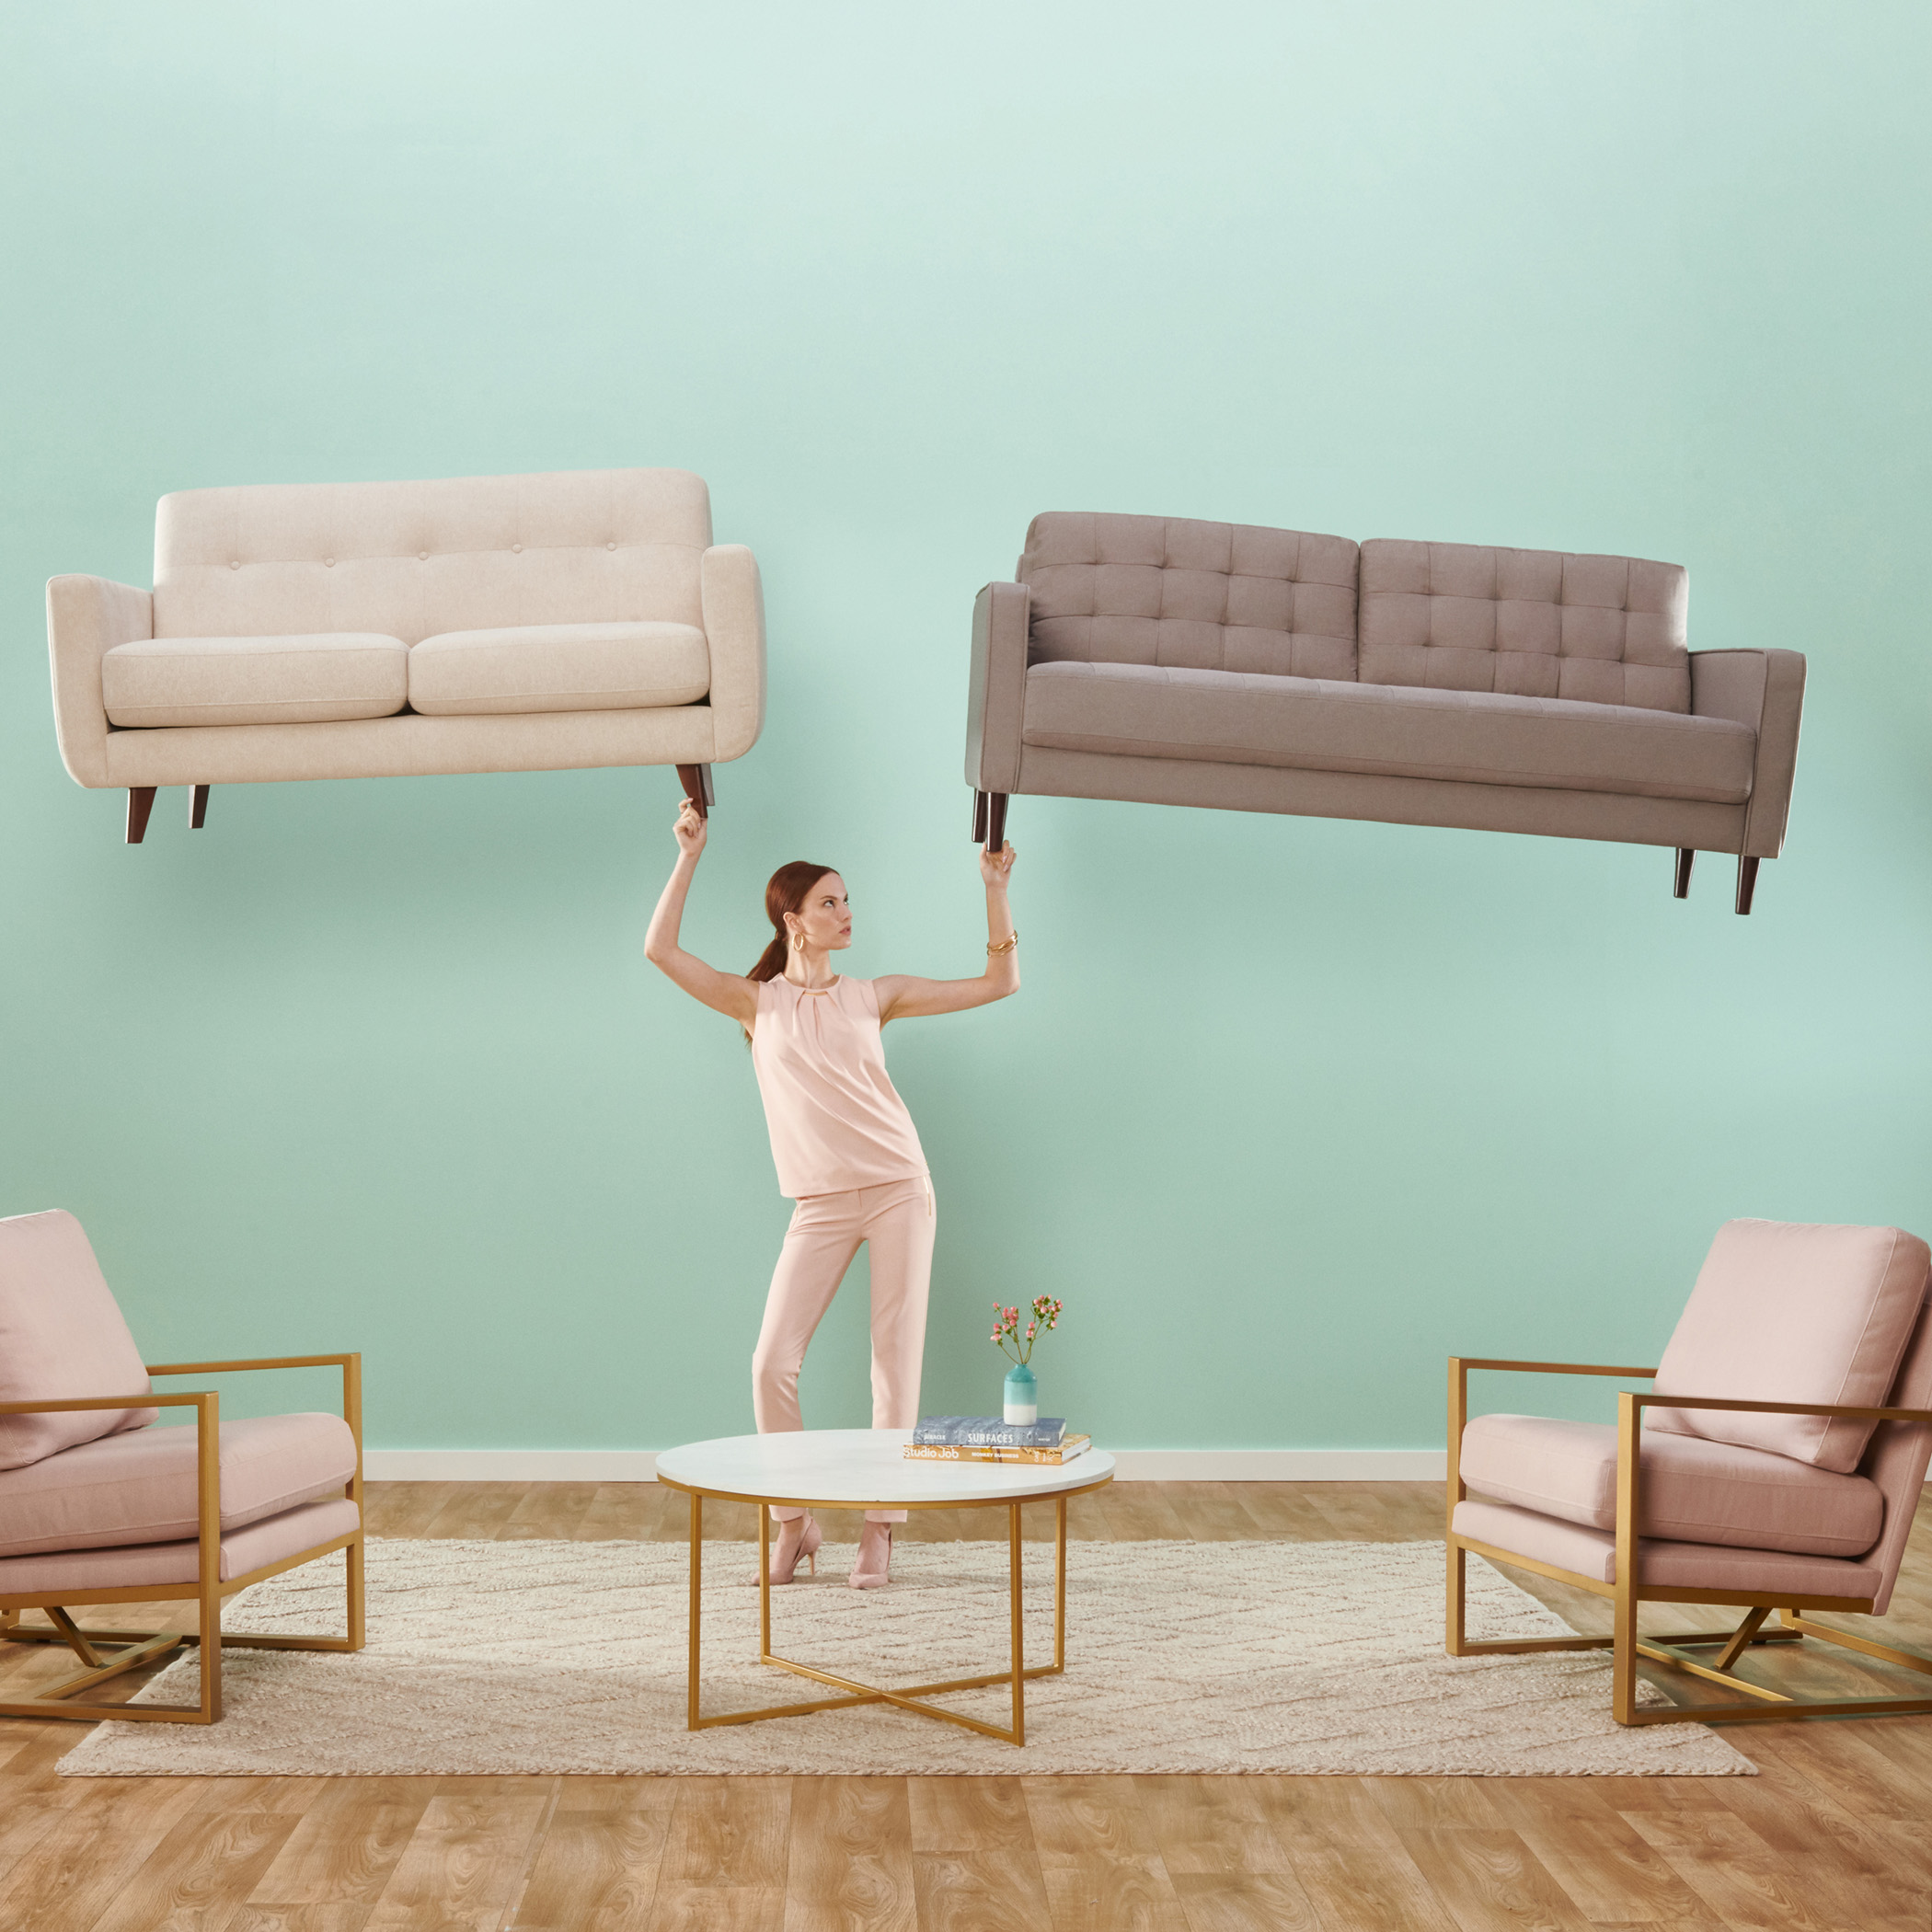 IanCoble_Showroom_PlayWithYourFurniture_Couches_TileCrop_0017